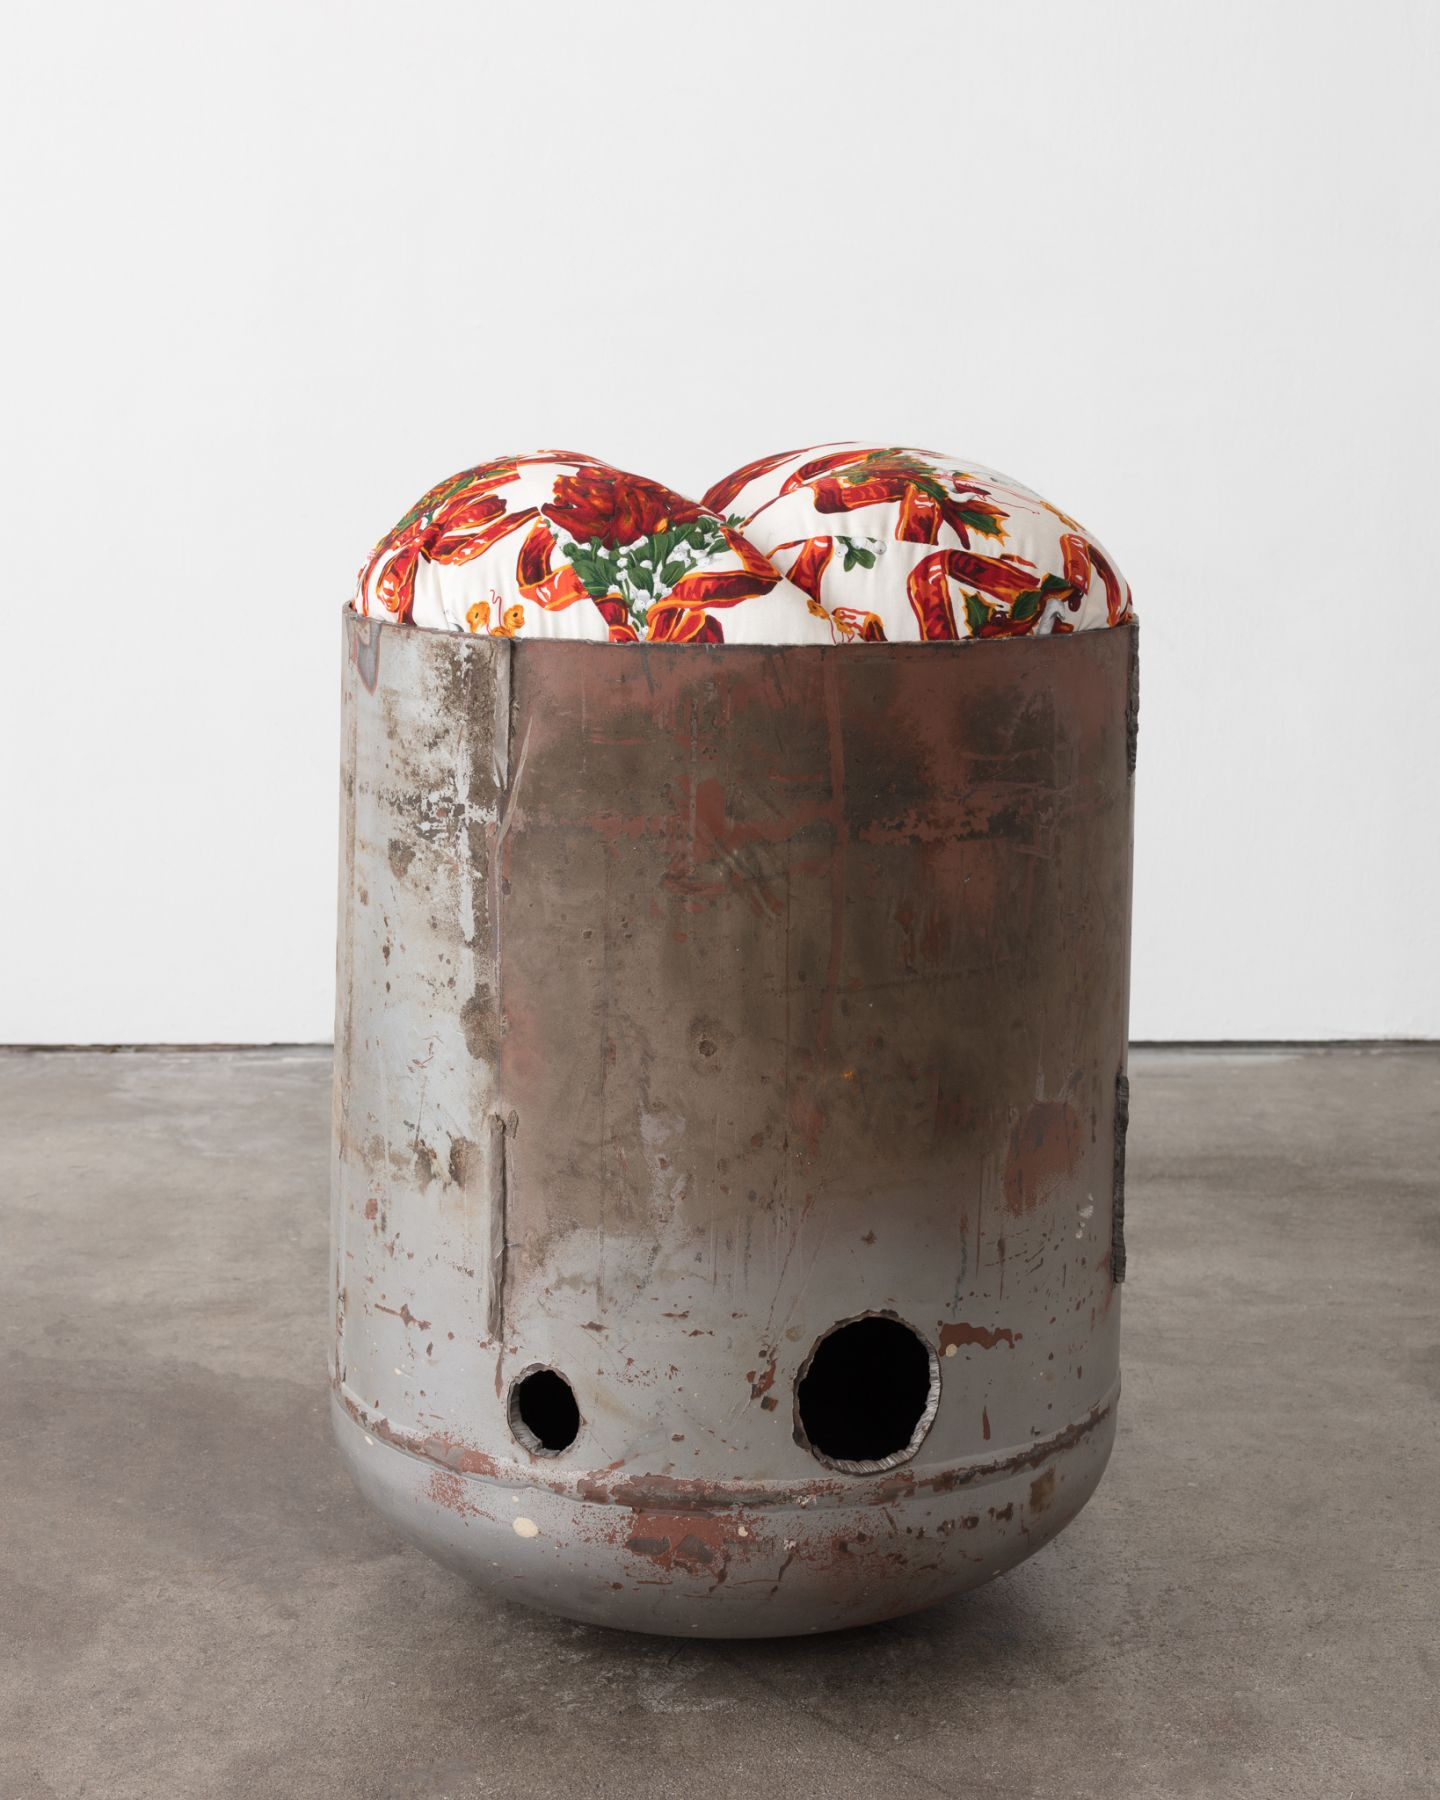 Elad Lassry, Untitled (Pod, Holiday Peppers and Bows, 2), 2018